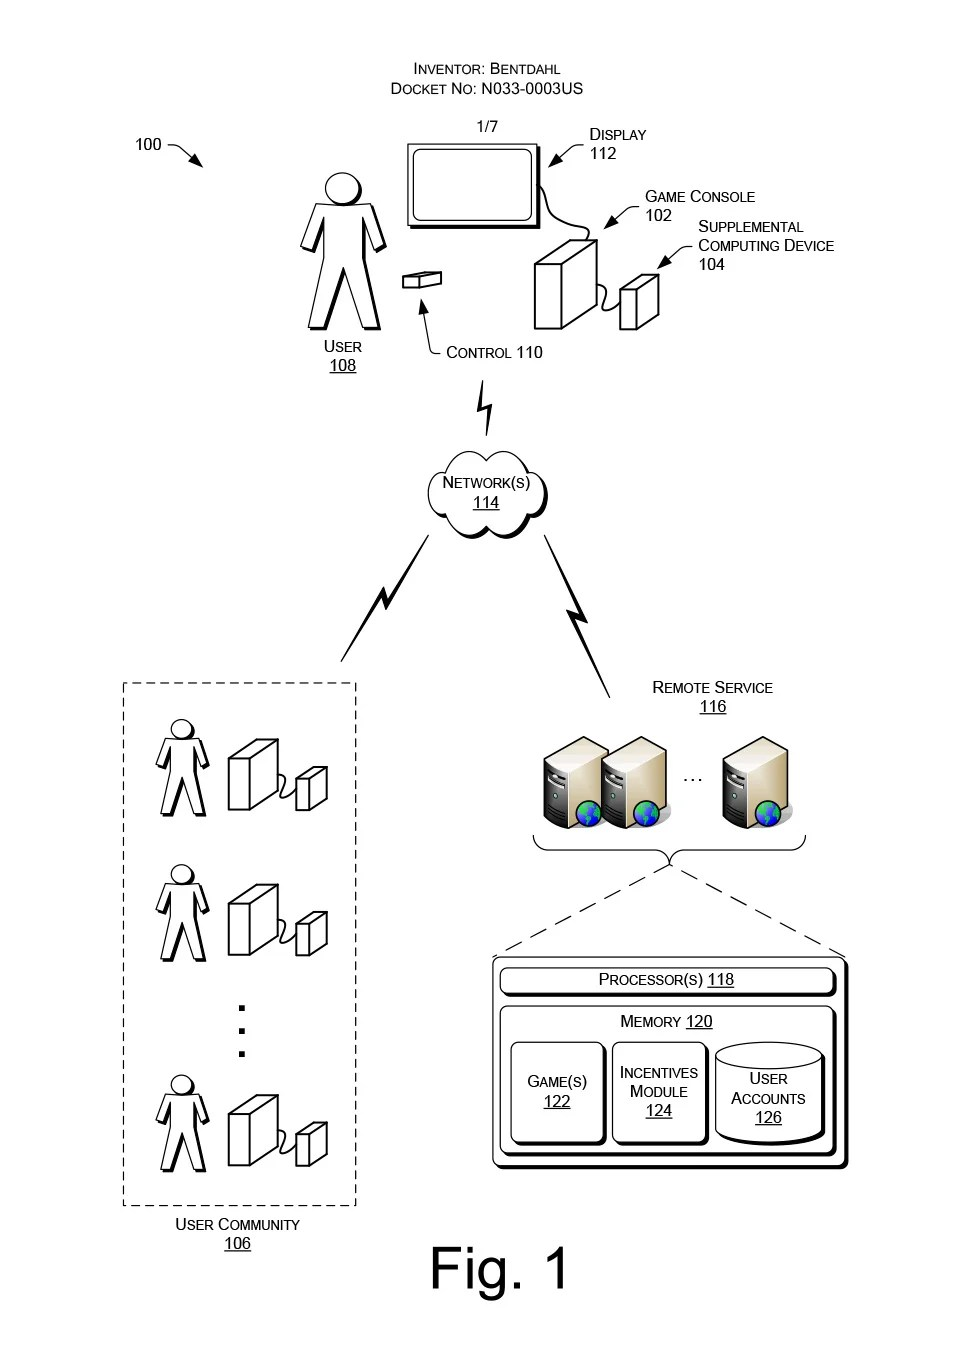 Intriguing Nintendo Patent Points to 'Supplemental